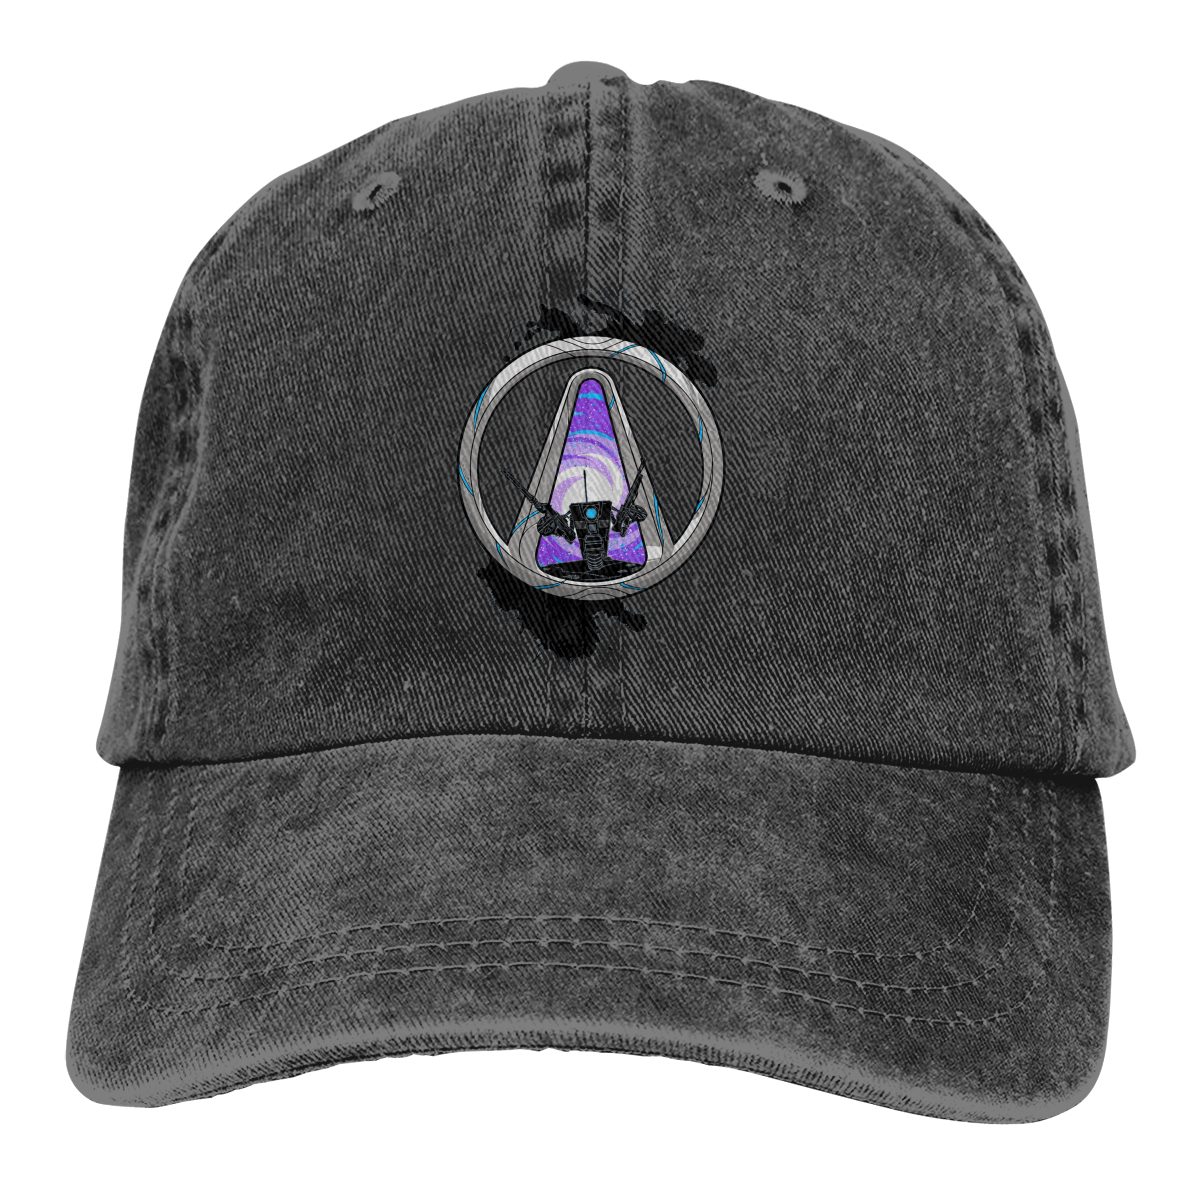 Vault Dominator Baseball Cap Men Caps Women Snapback <font><b>Borderlands</b></font> Caps image